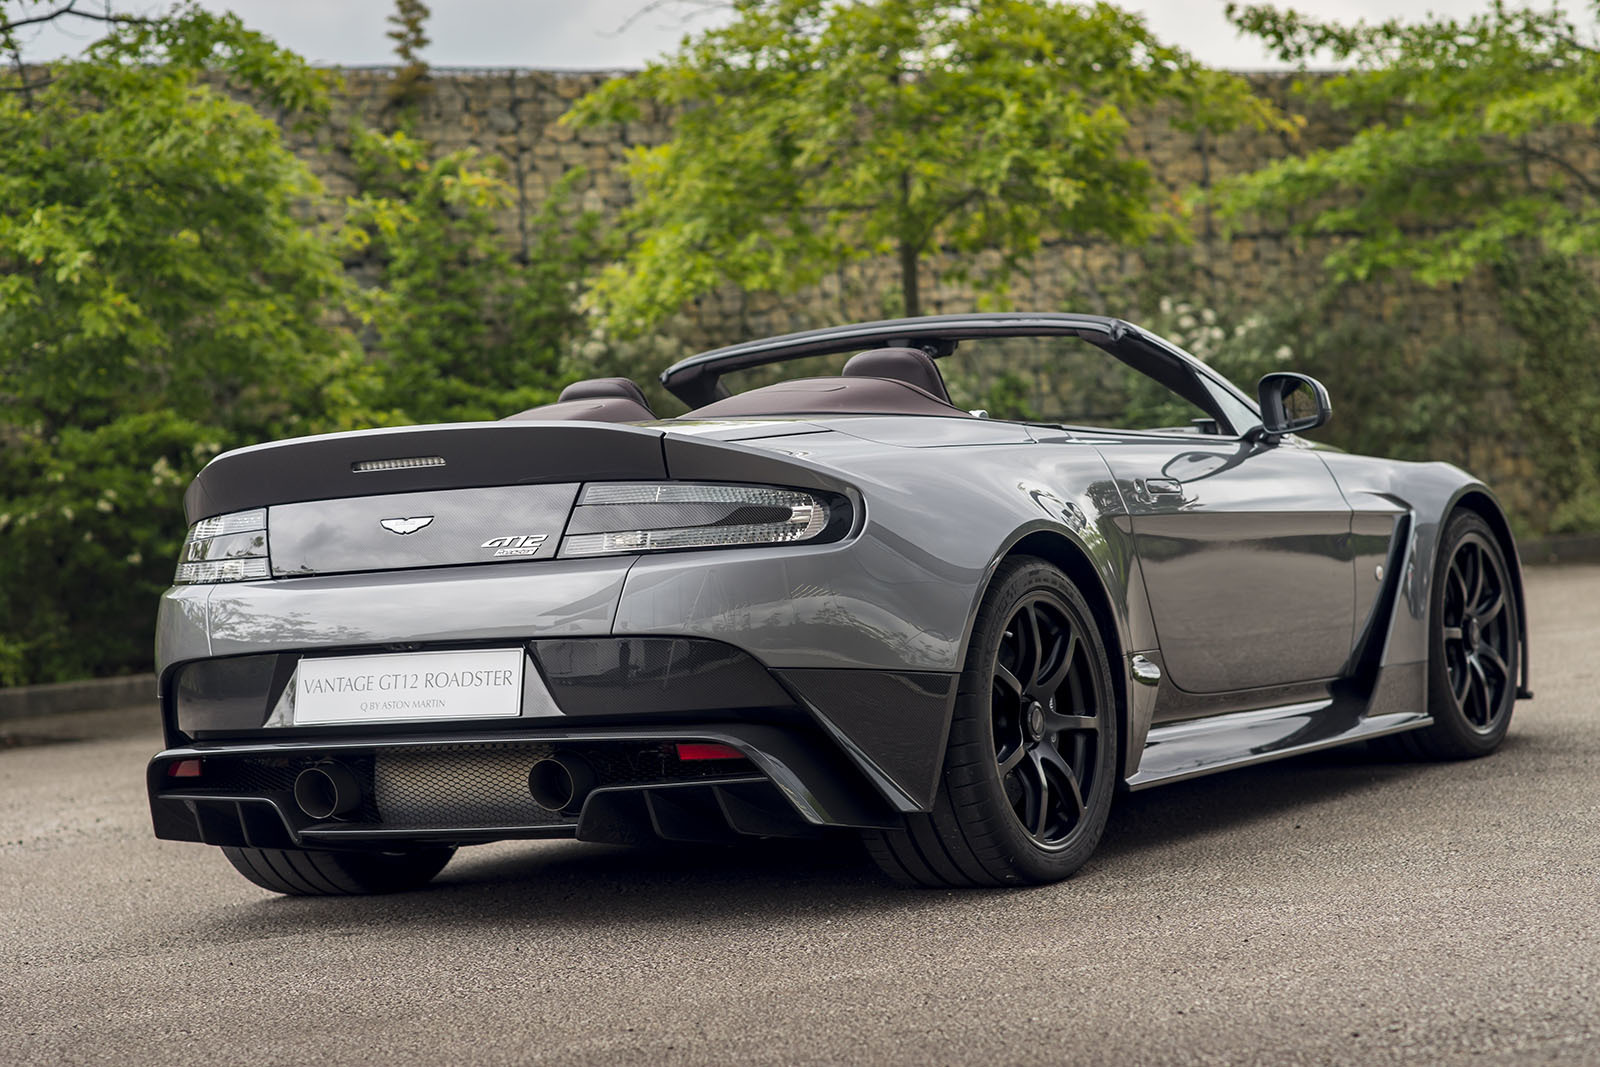 aston martin vantage gt12 roadster wallpapers images photos pictures backgrounds. Black Bedroom Furniture Sets. Home Design Ideas